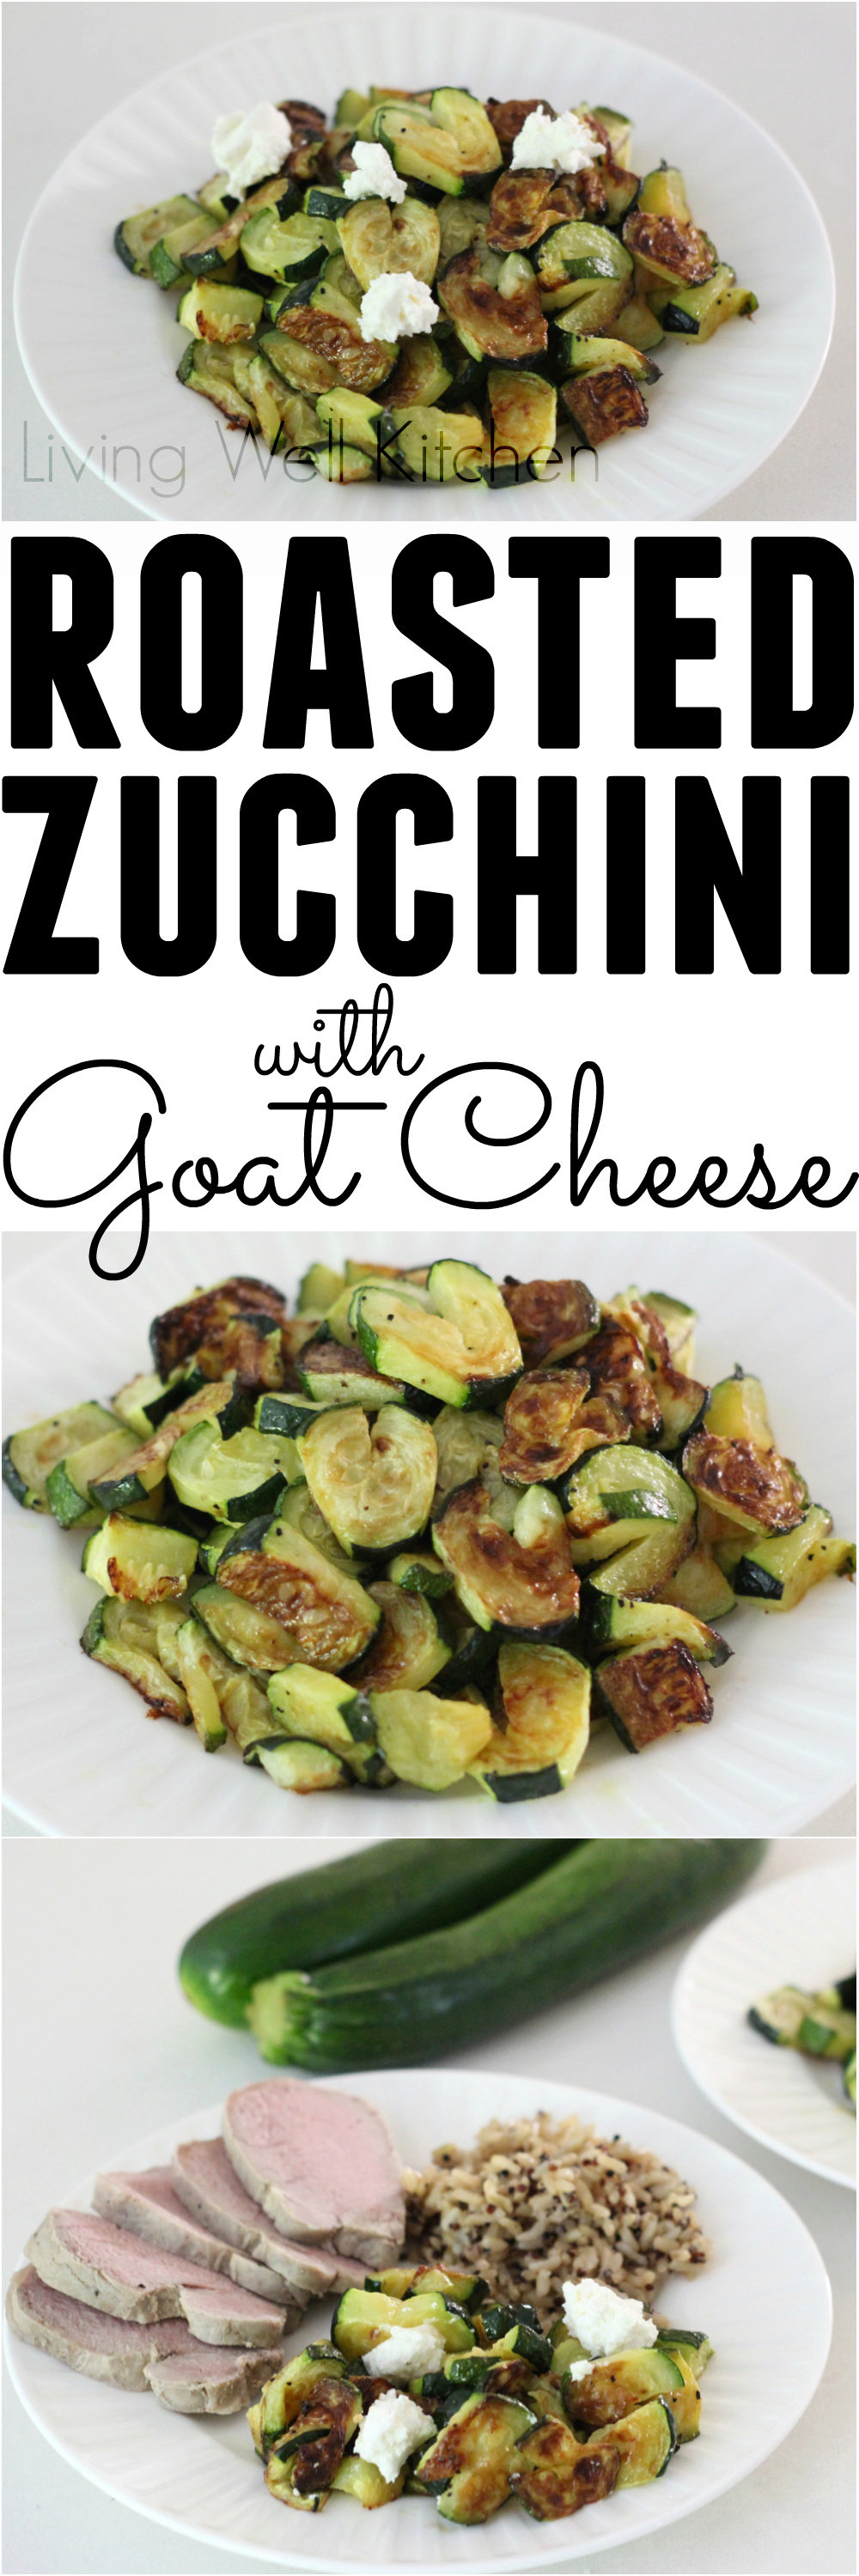 Roasted Zucchini Hearts and Goat Cheese